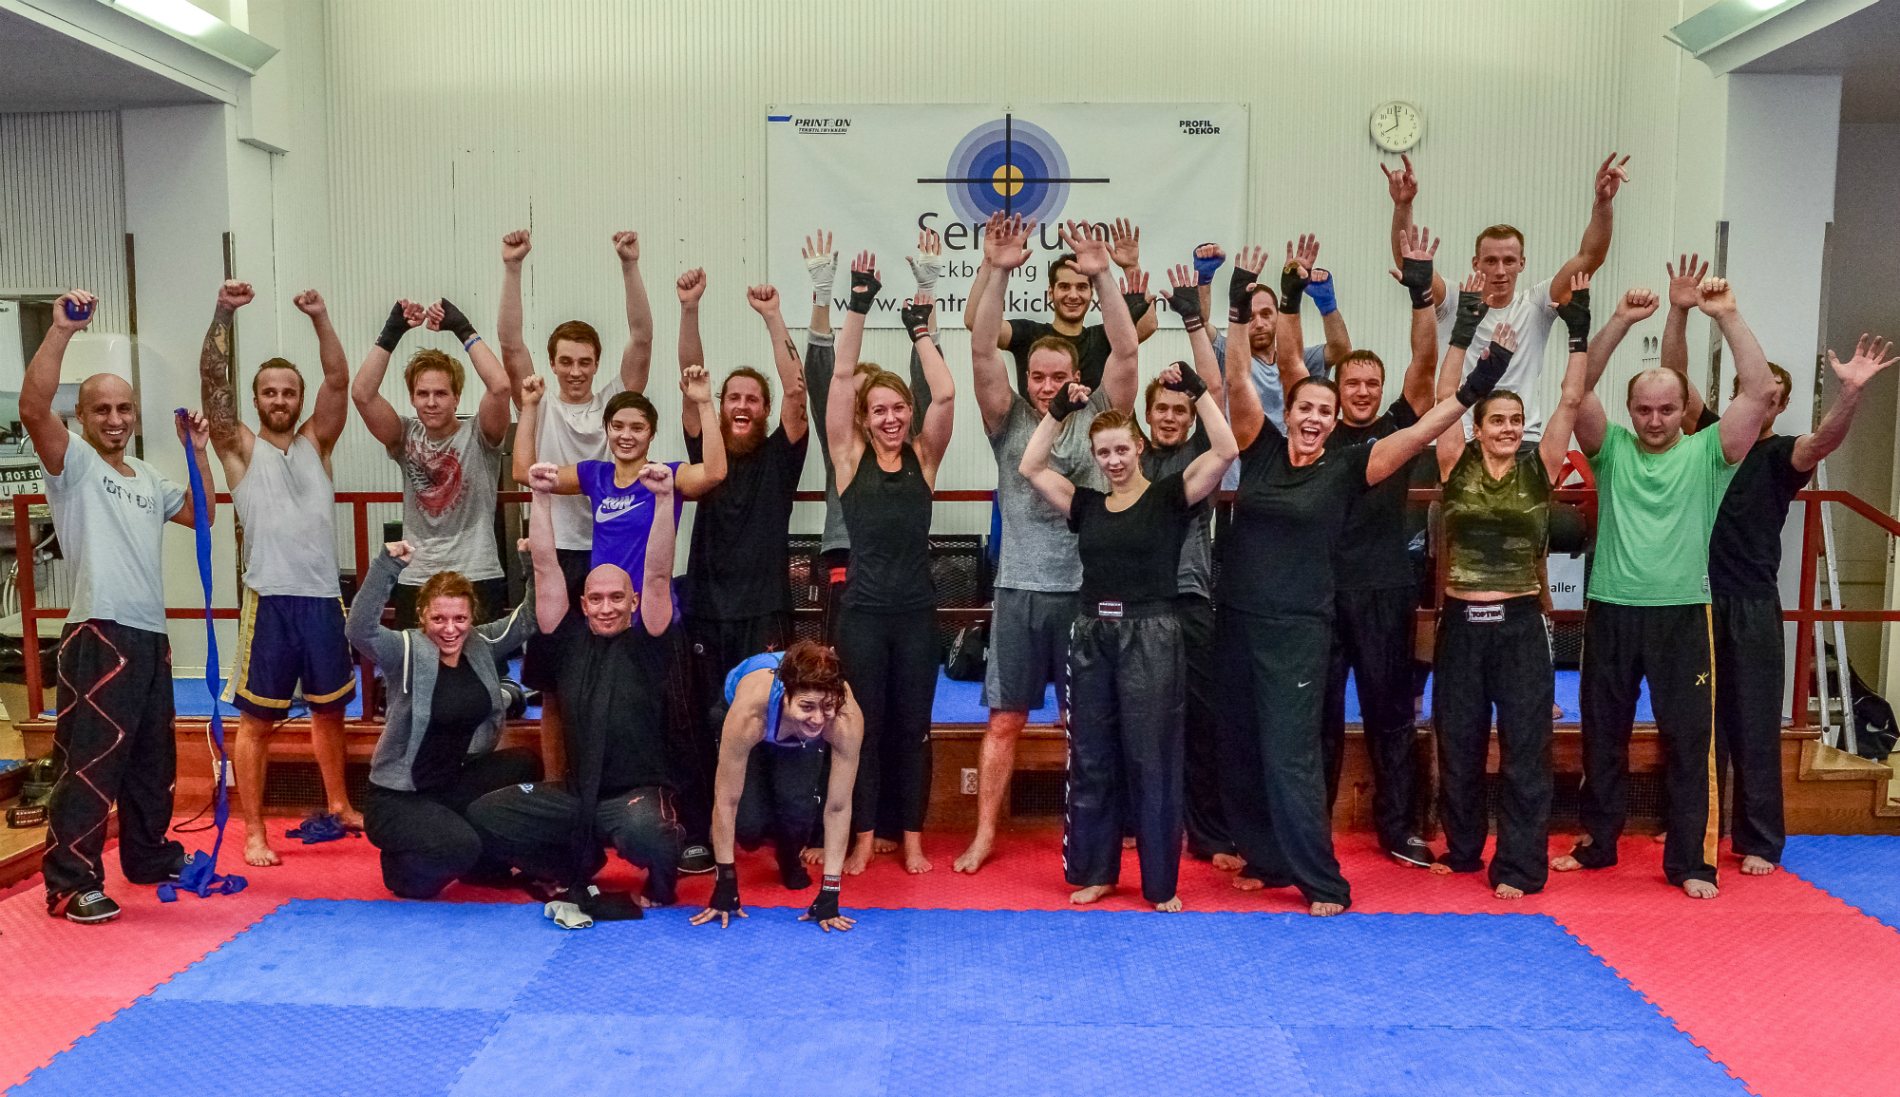 Nybegynnerparti for kickboxing i Oslo